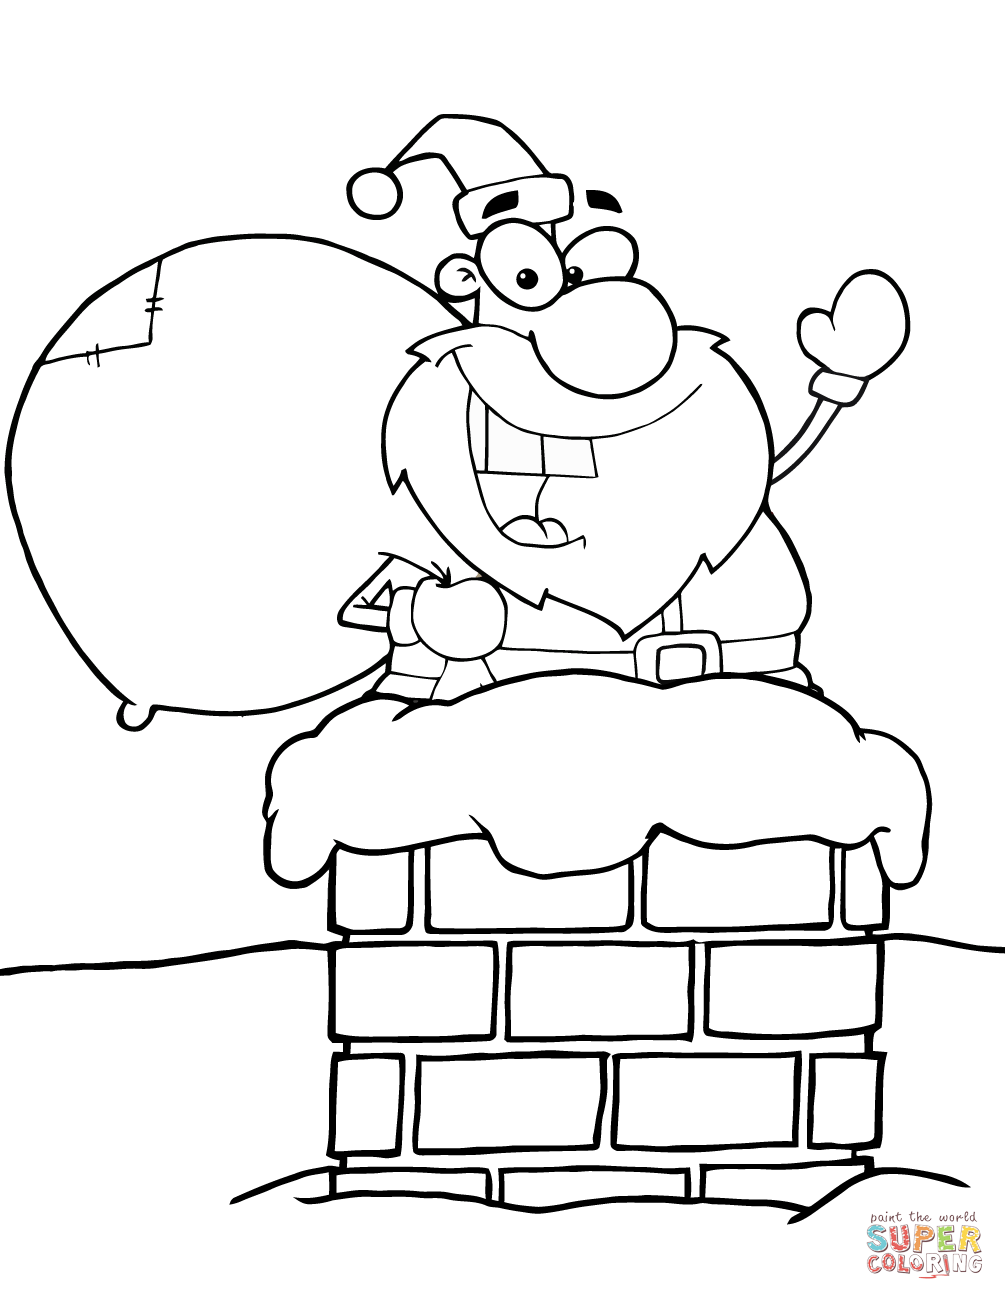 Santa Claus Coloring Pages Online With In Chimney Page Free Printable